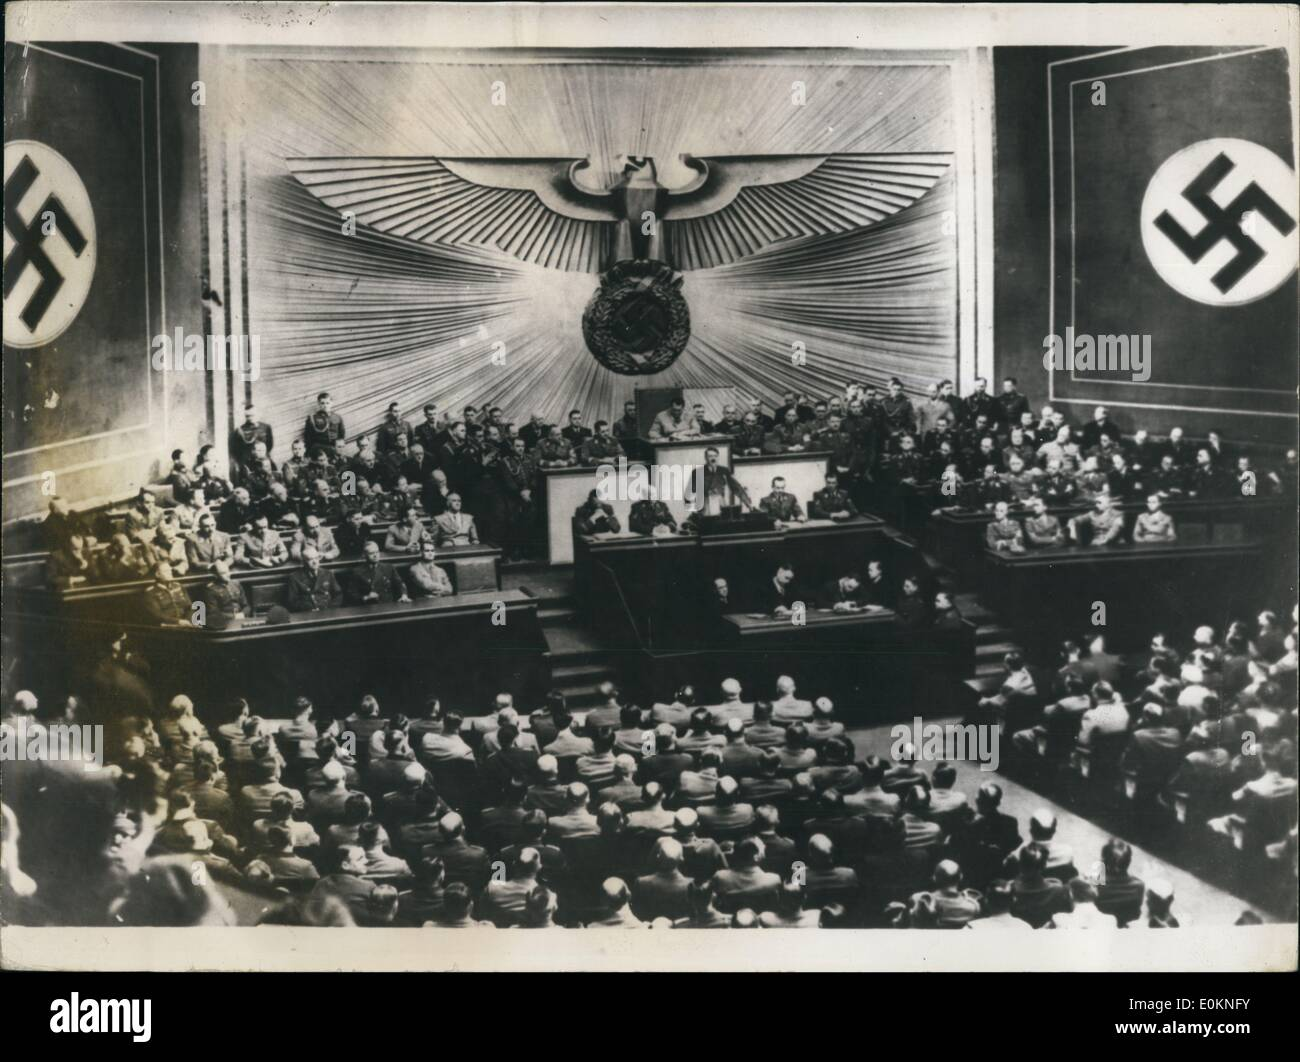 Jan. 1, 1930 - Hitler speaks in the Reichstag. (exact date unknown) - Stock Image